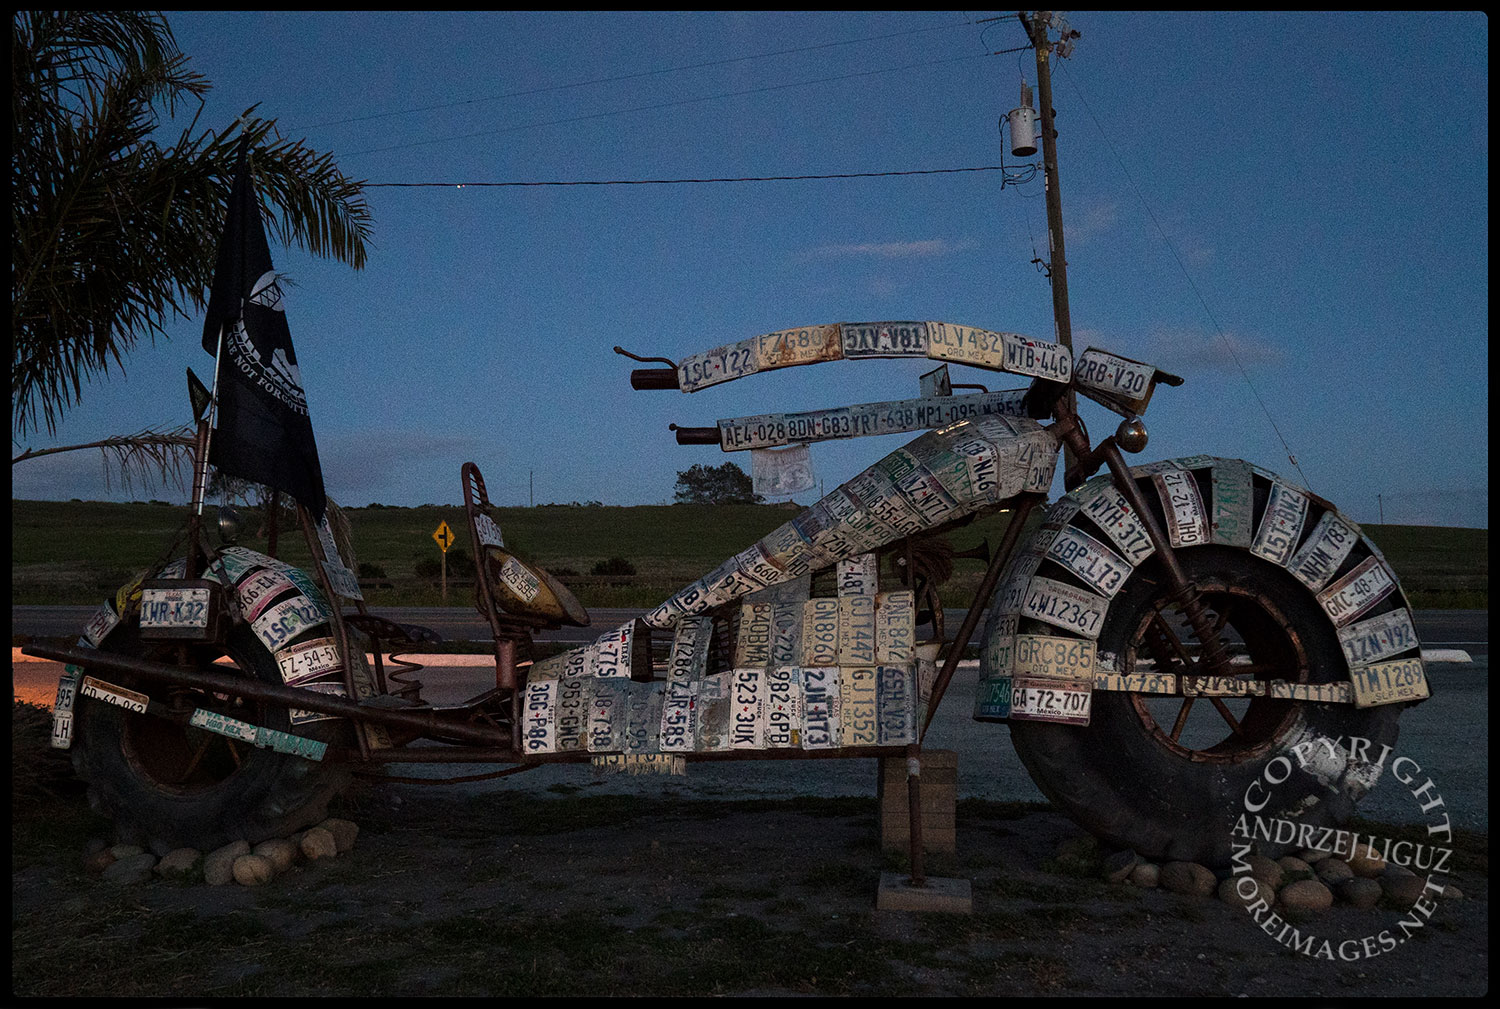 Mexican motorbike sculpture, Highway 1, north of Carmel, CA 2015-03-02